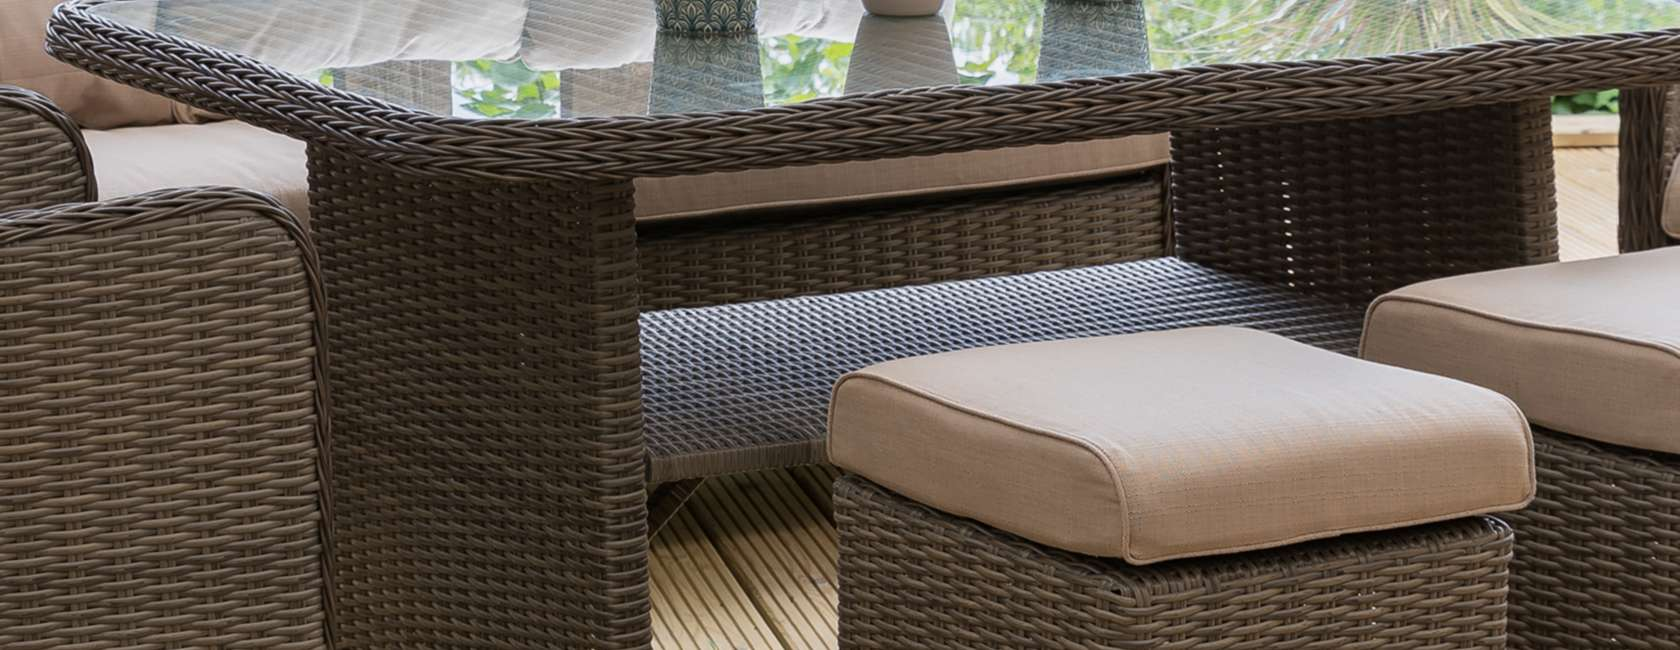 Lg outdoor saigon outdoor furniture at john lewis partners